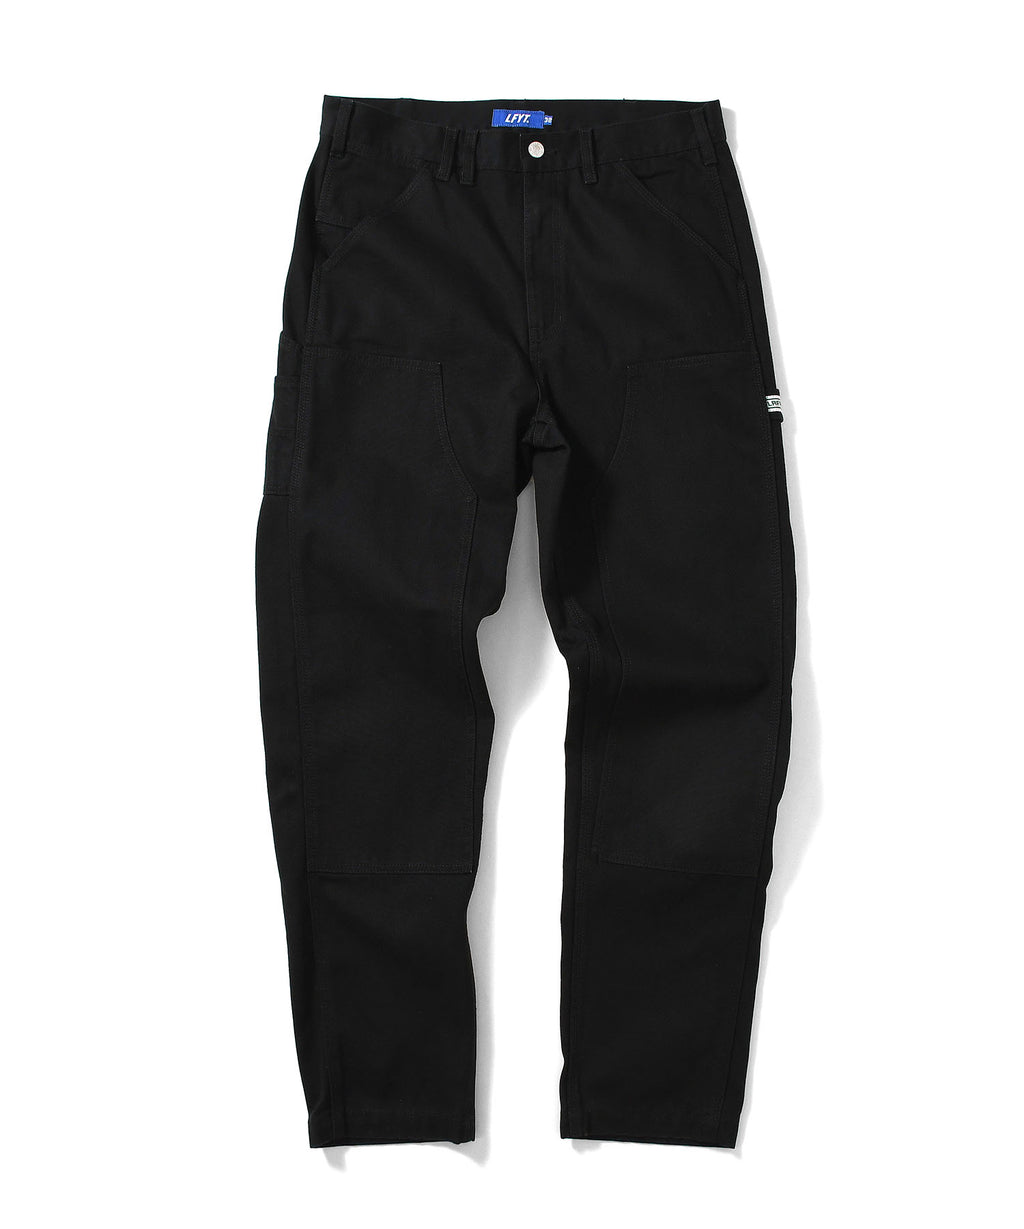 WORKERS DOUBLE KNEE DUCK PAINTER PANTS LA201203 BLACK